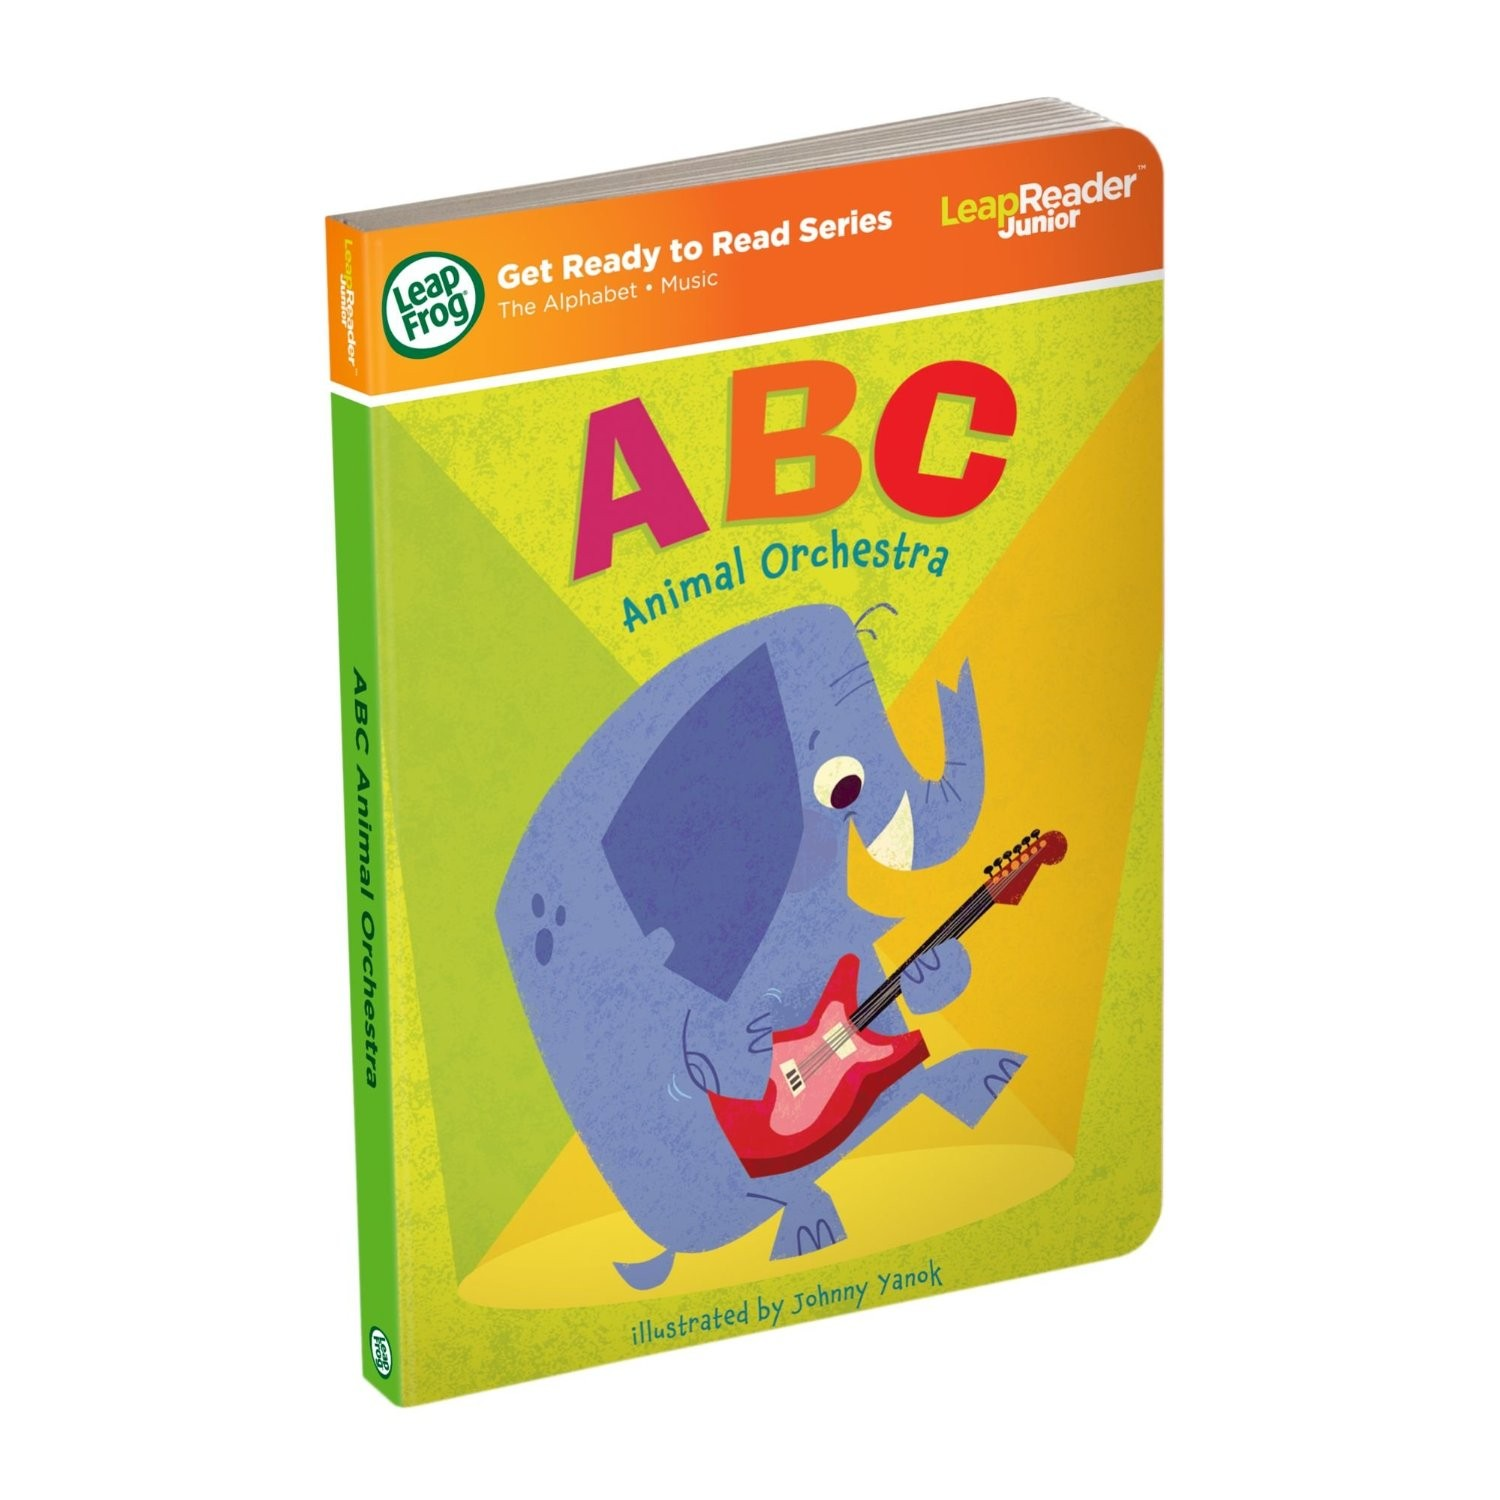 LeapReader Junior Animal Orchestra Alphabet Book